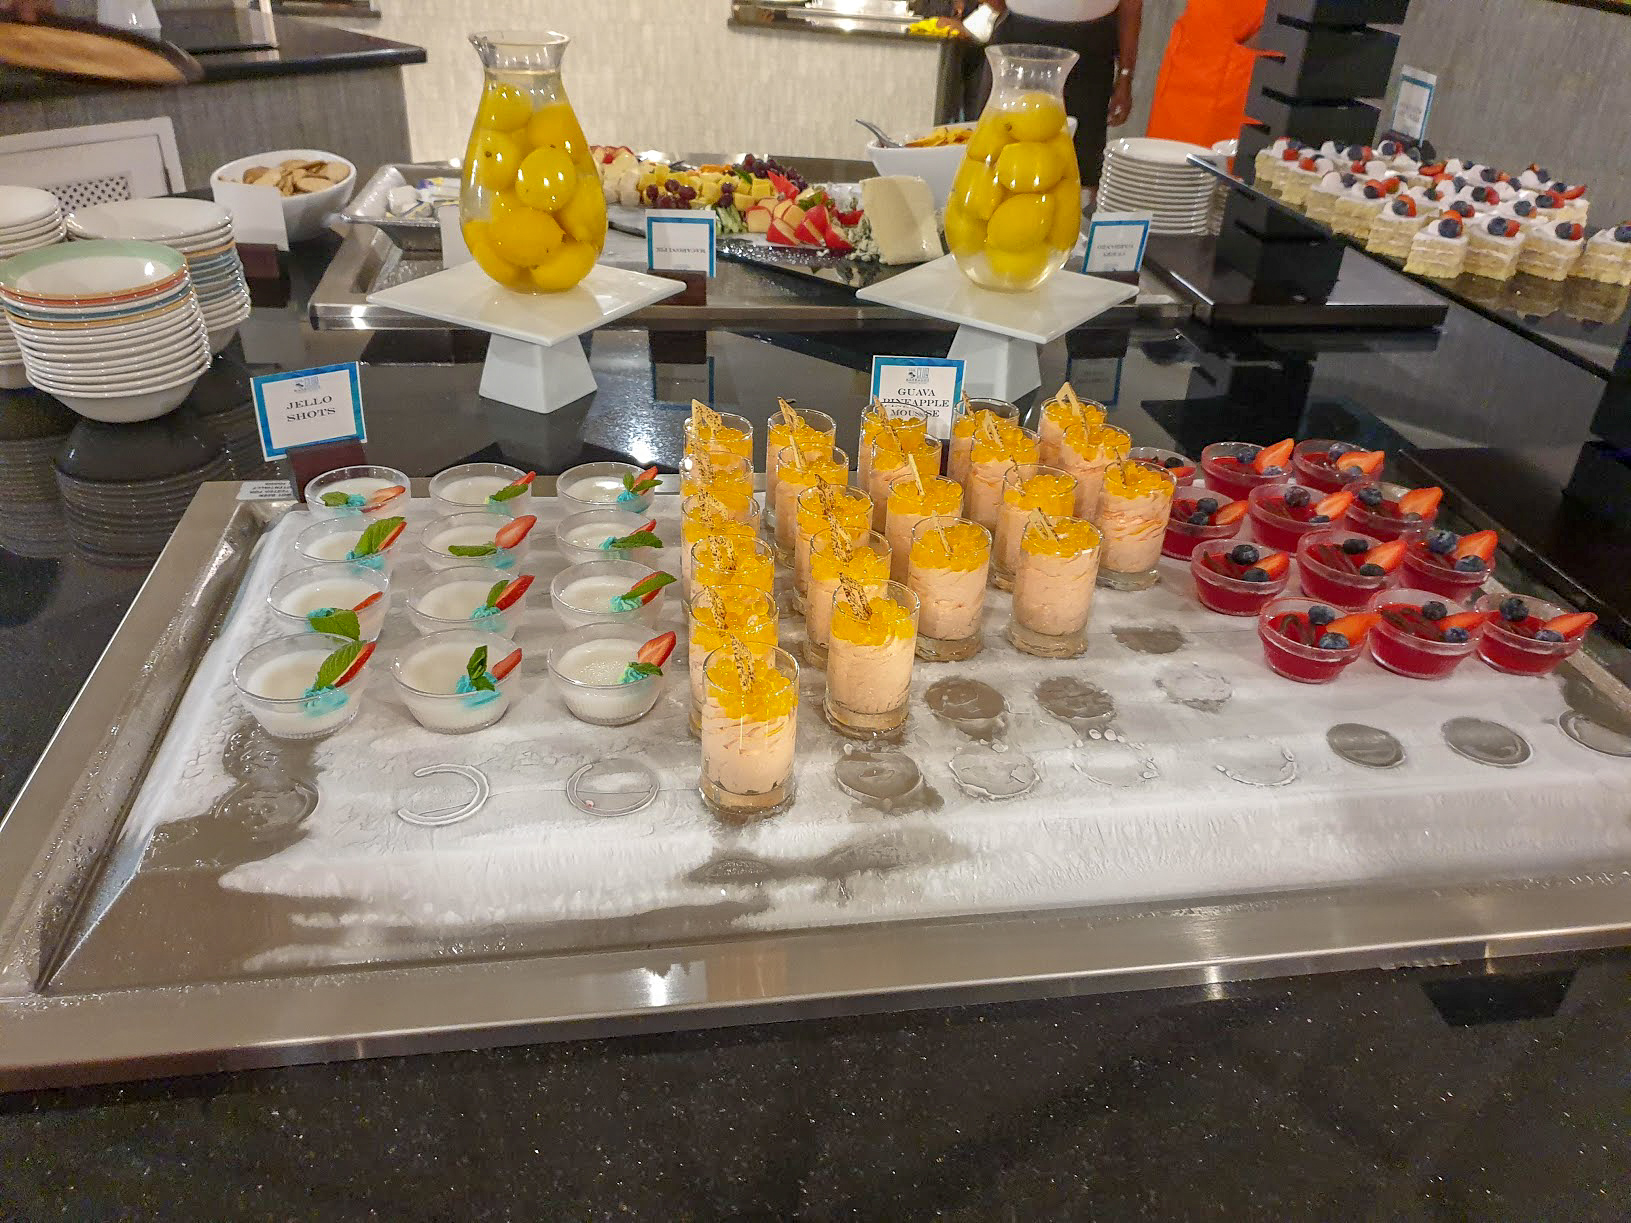 A collection of creamy, fruity desserts. I am not sure what they were.